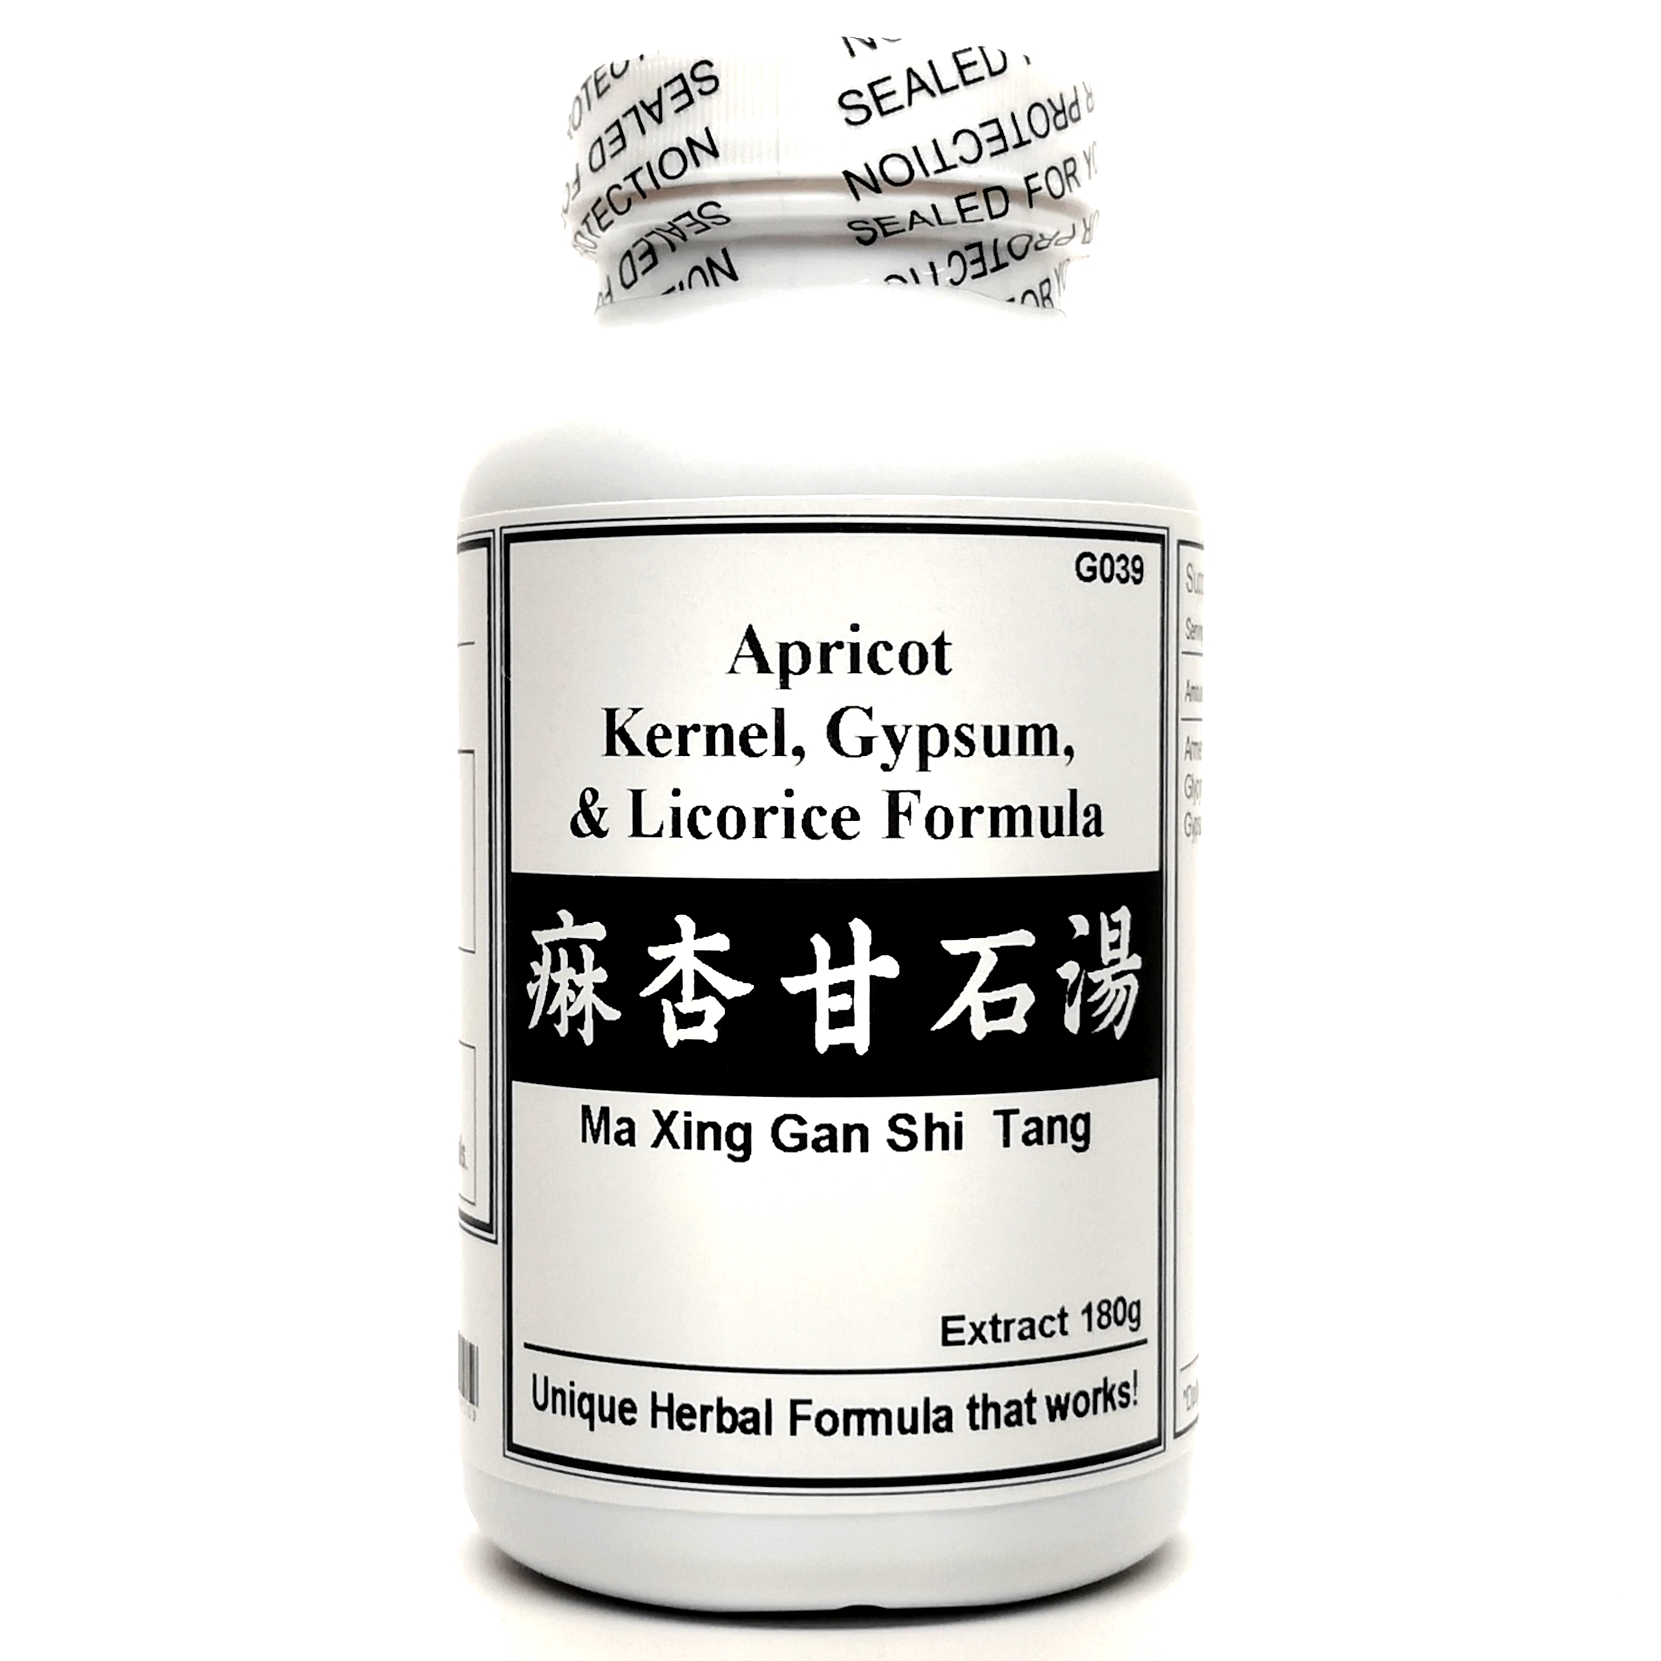 Apricot  Kernel, Gypsum,  and Licorice Formula Extrat Powder Instant Herbal Tea 180g  (Ma Xing Gan Shi Tang)